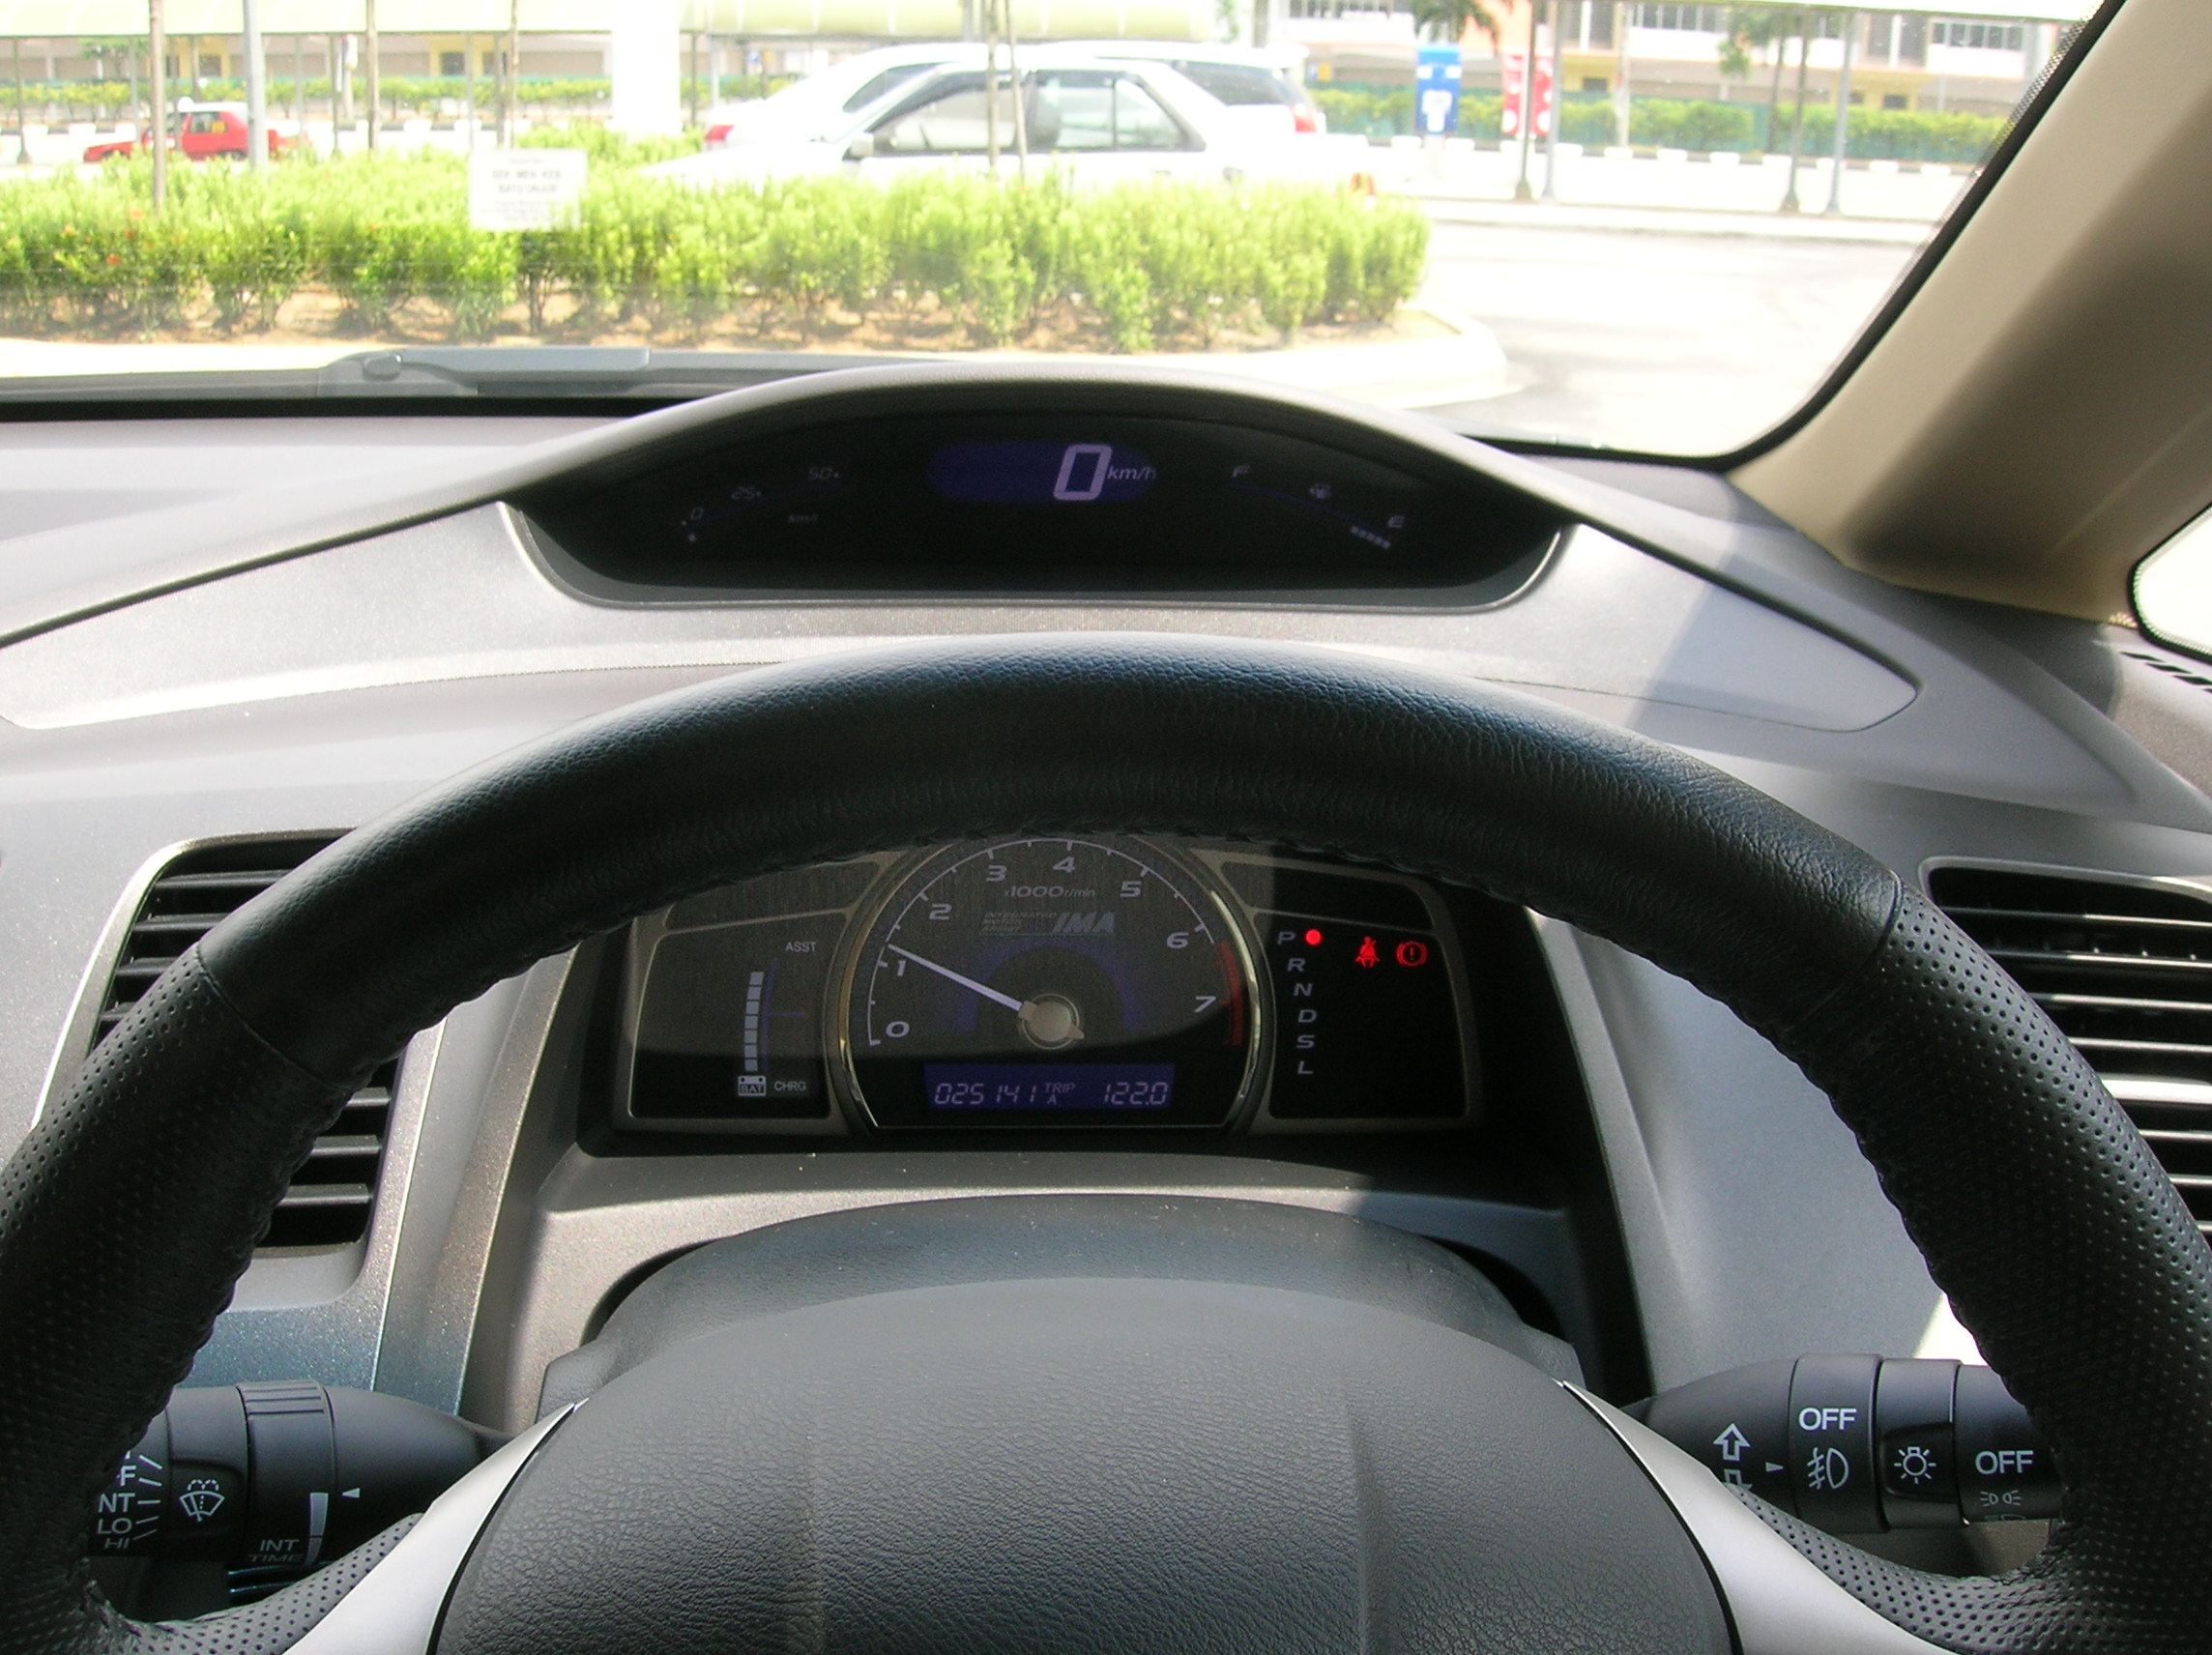 Two tiered instrument cluster.